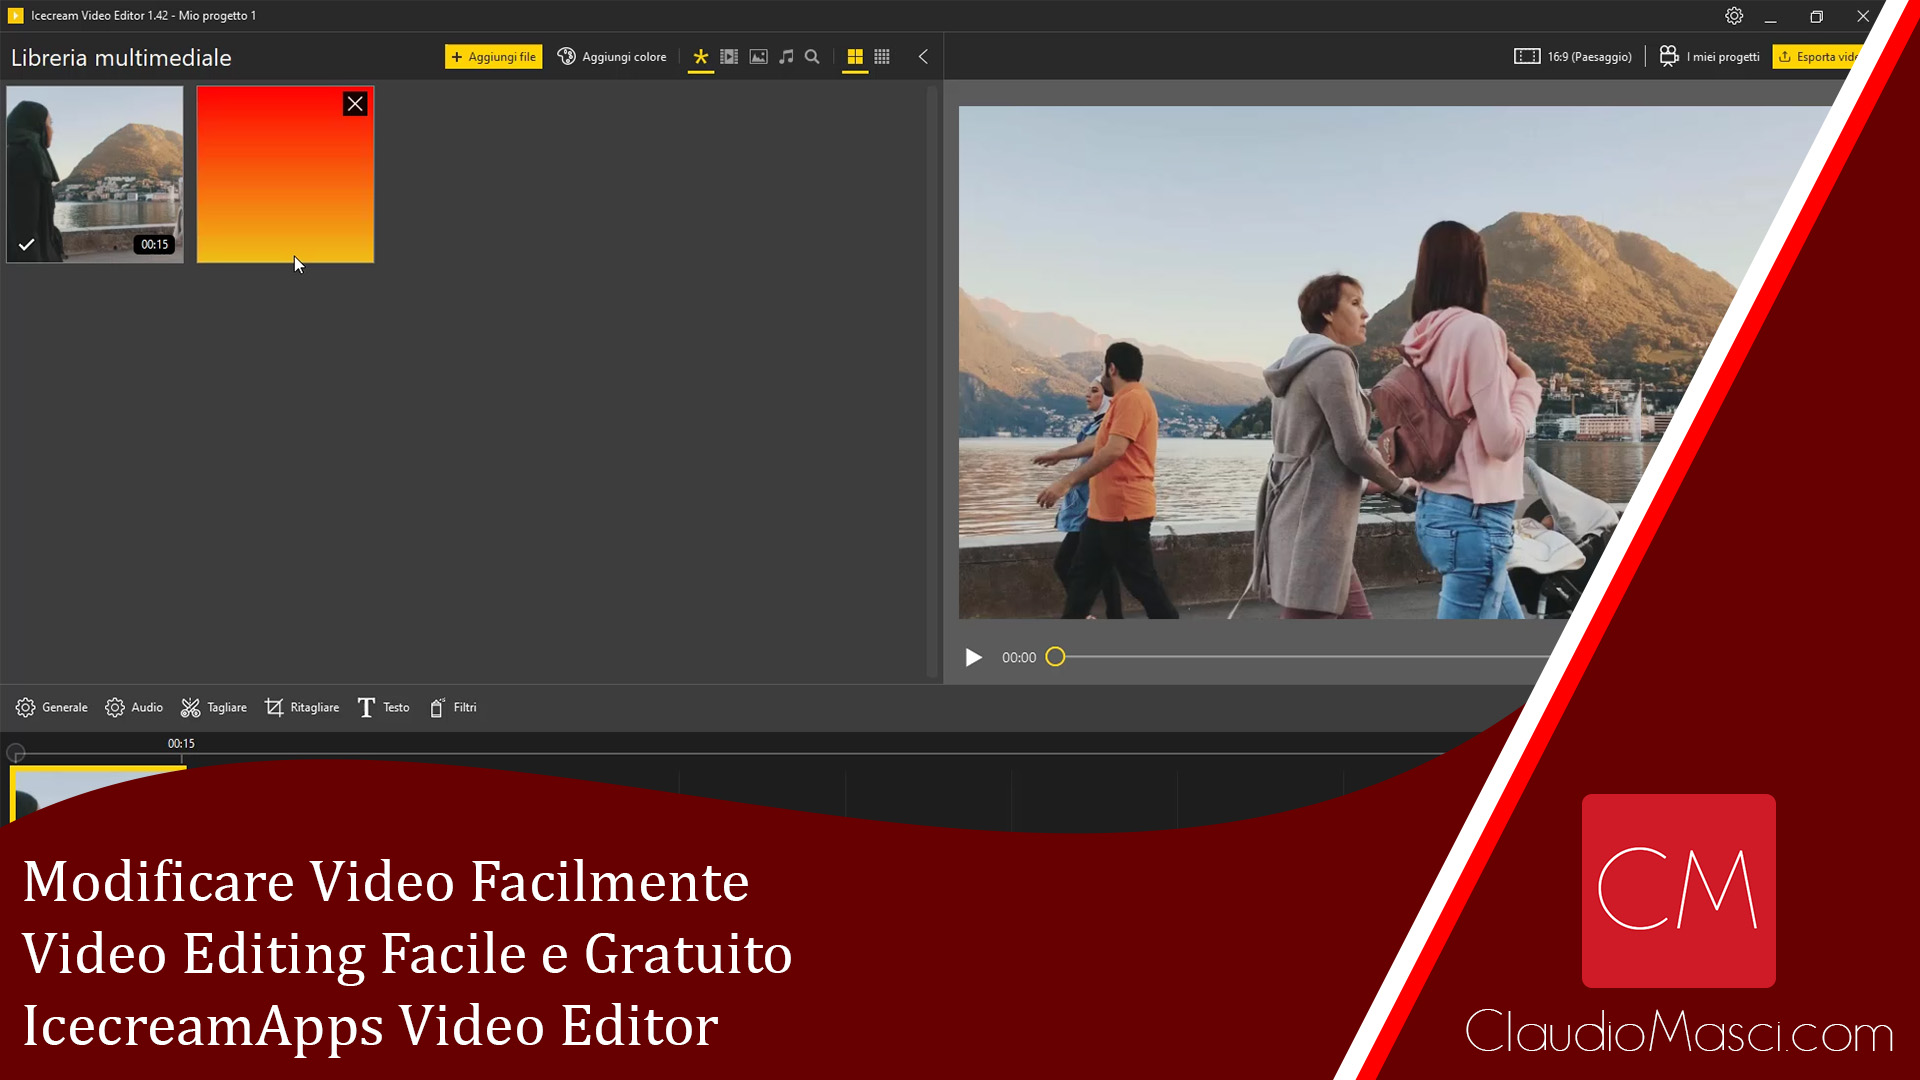 Modificare Video Facilmente – Video Editing Facile e Gratuito – IcecreamApps Video Editor